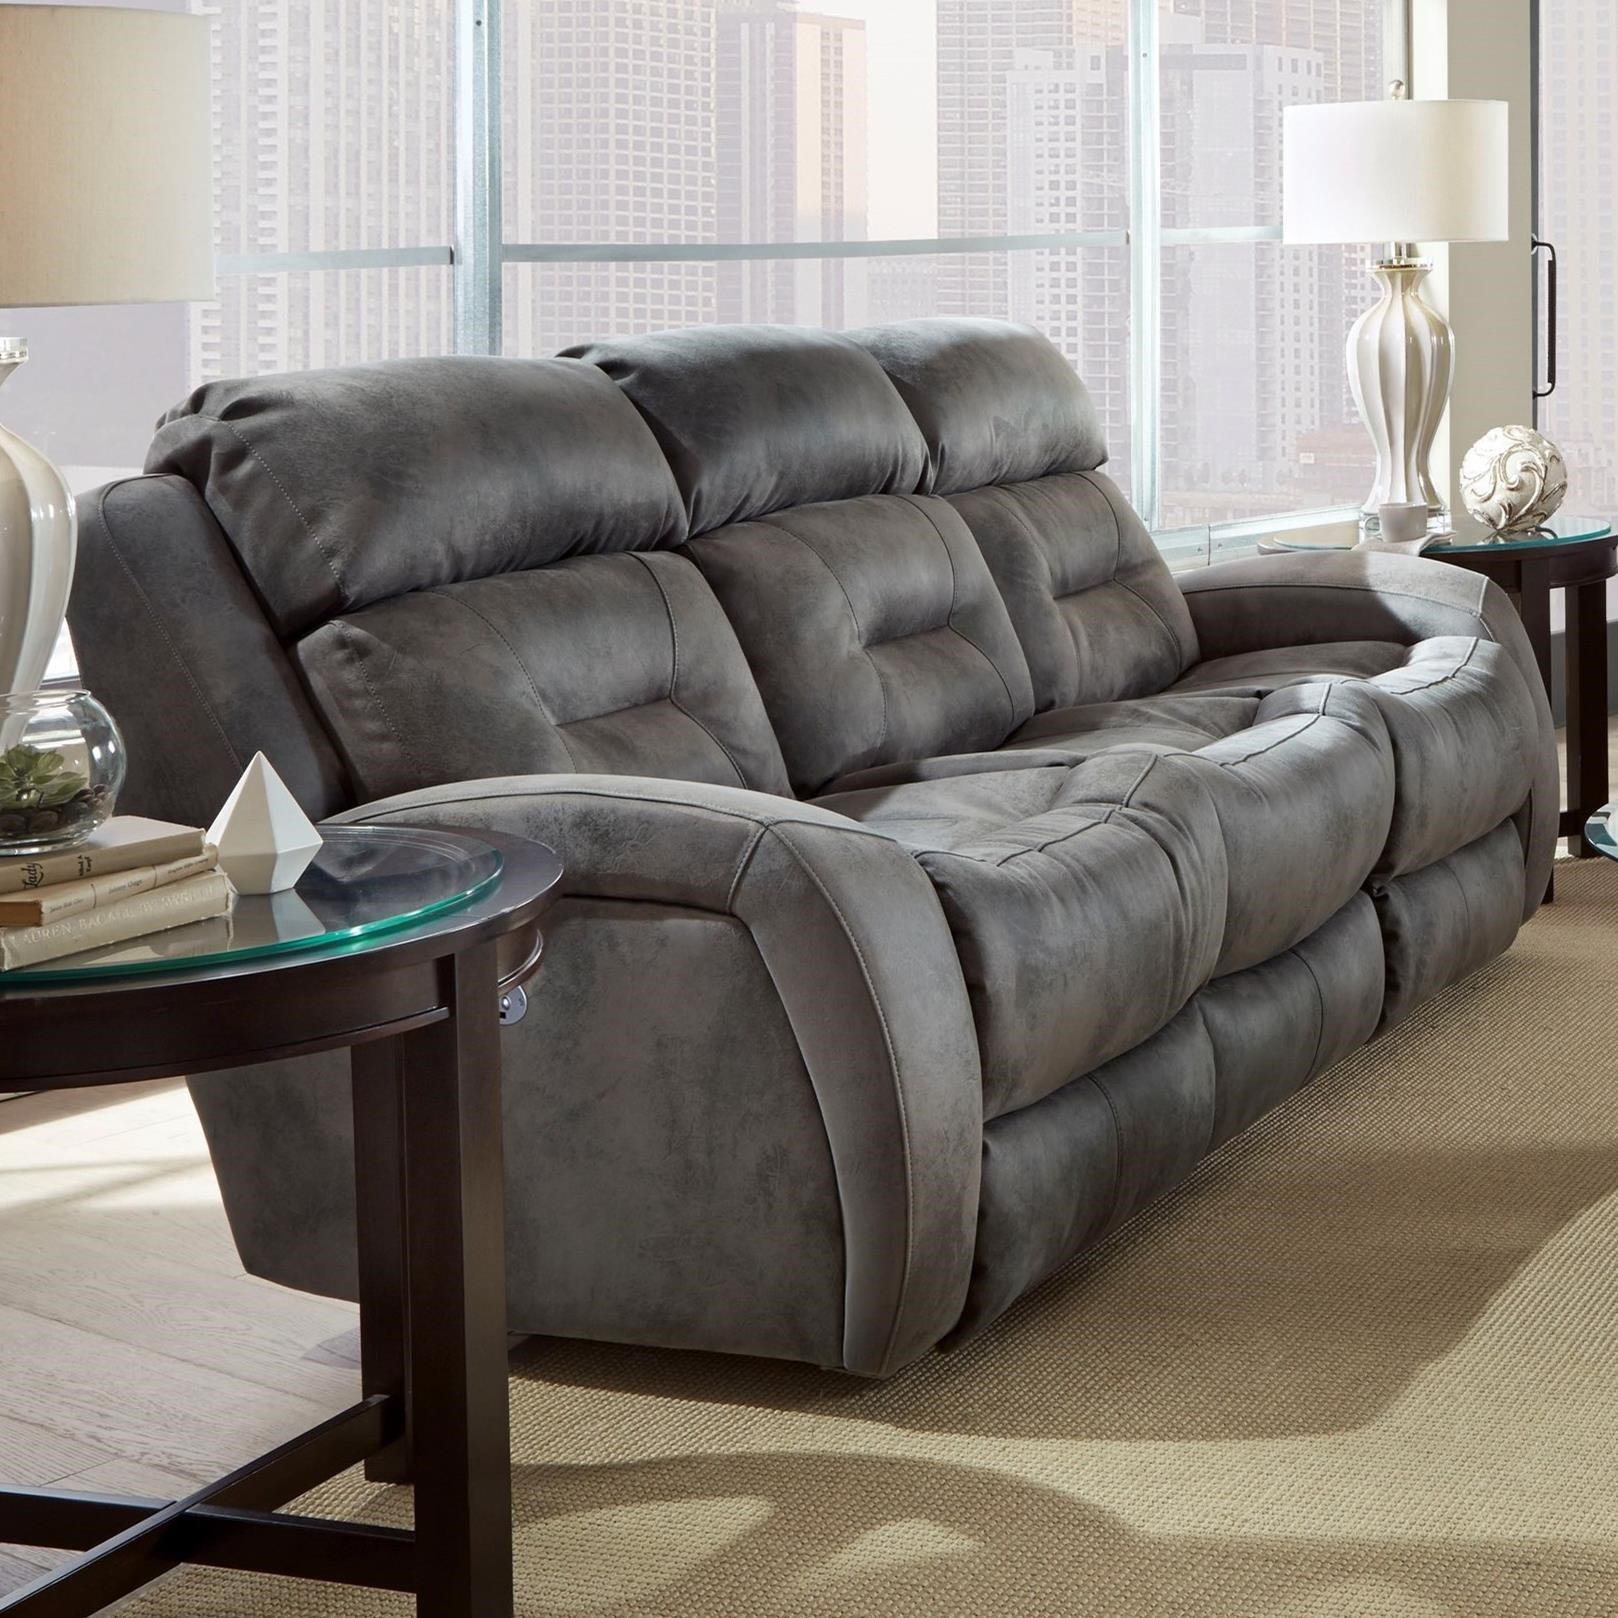 Delightful Southern Motion Showcase Double Reclining Sofa With Power Headrest